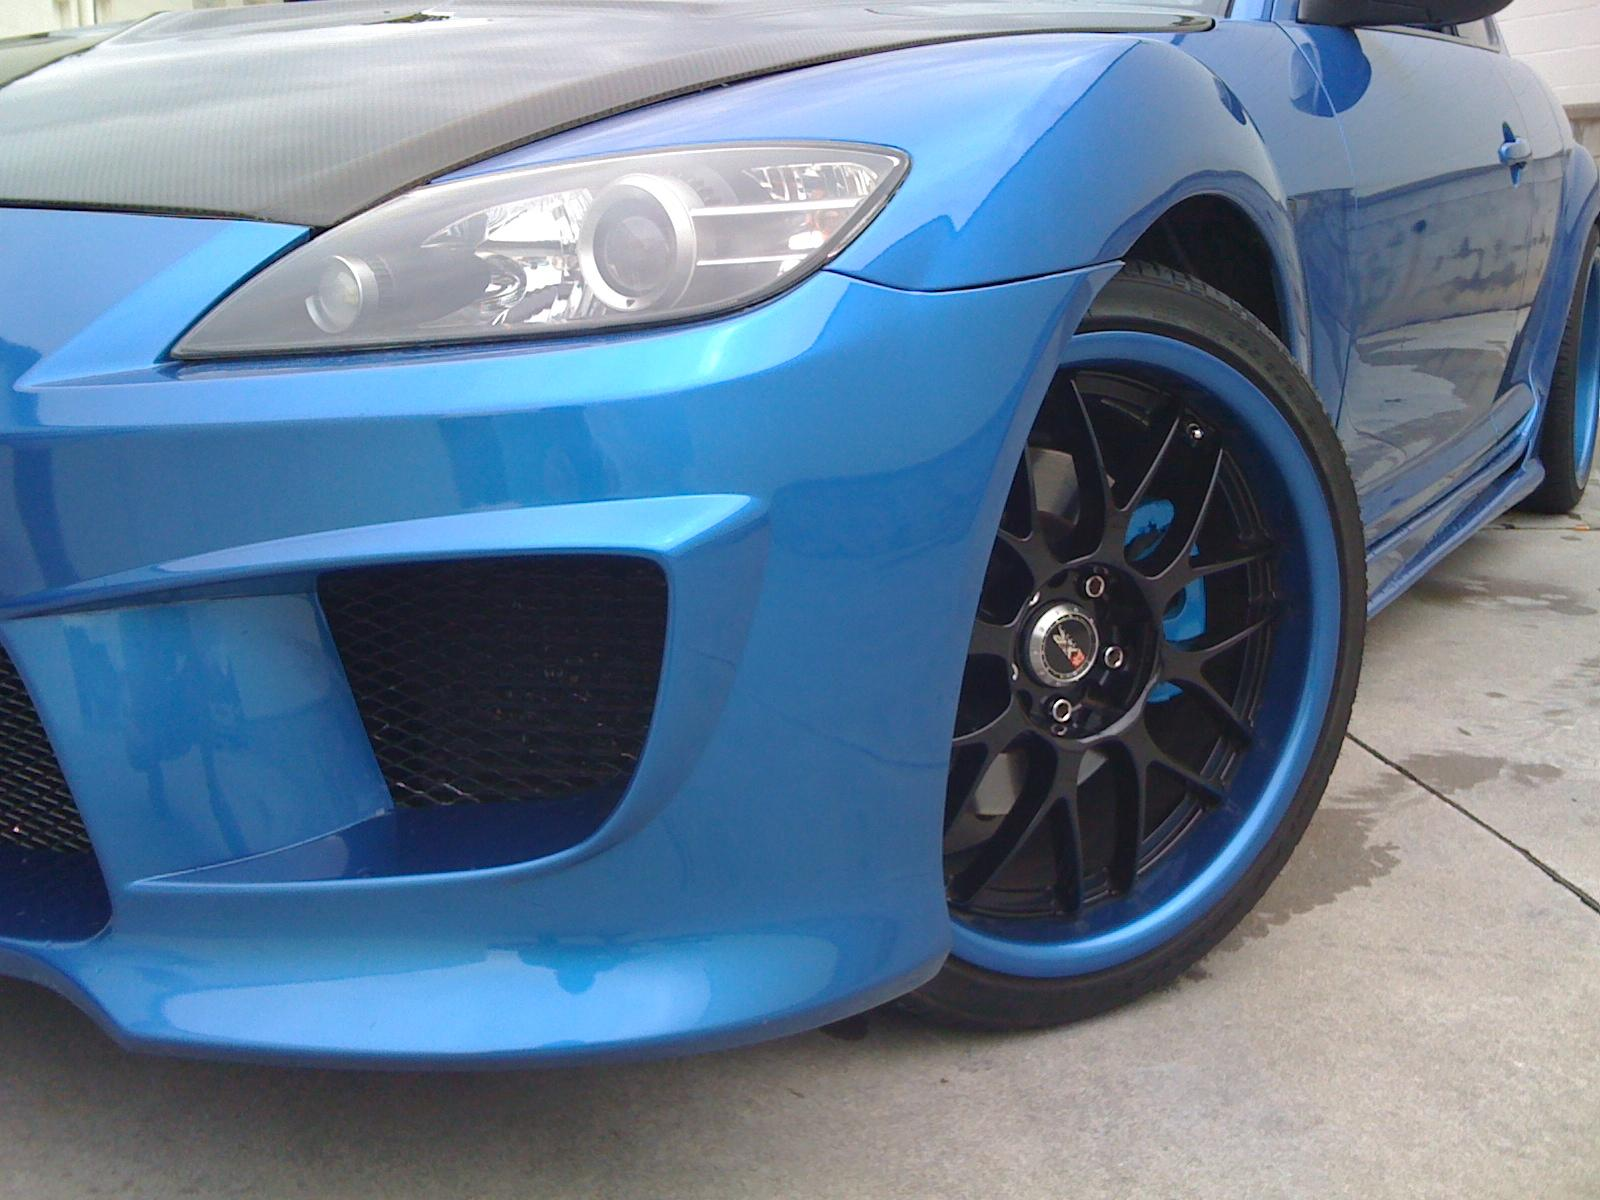 Cam's Project 8